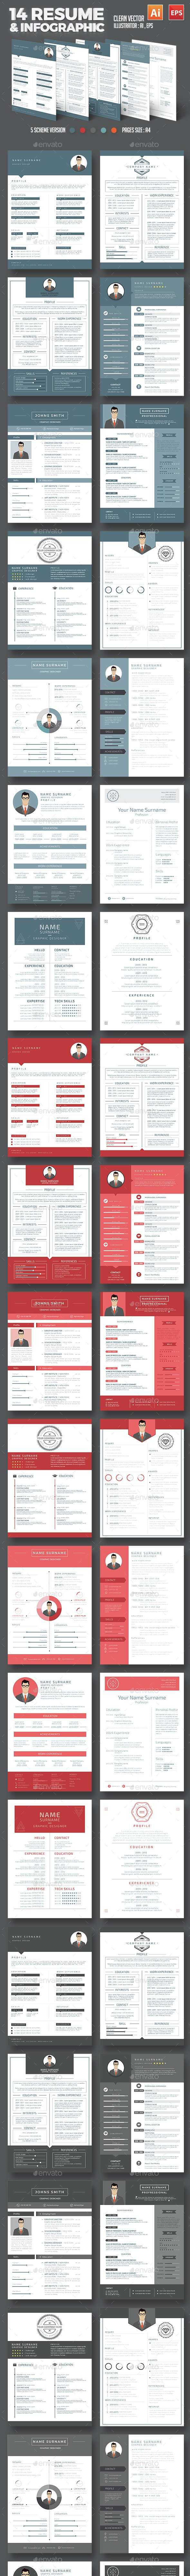 14 Resume Template Design - Resumes Stationery